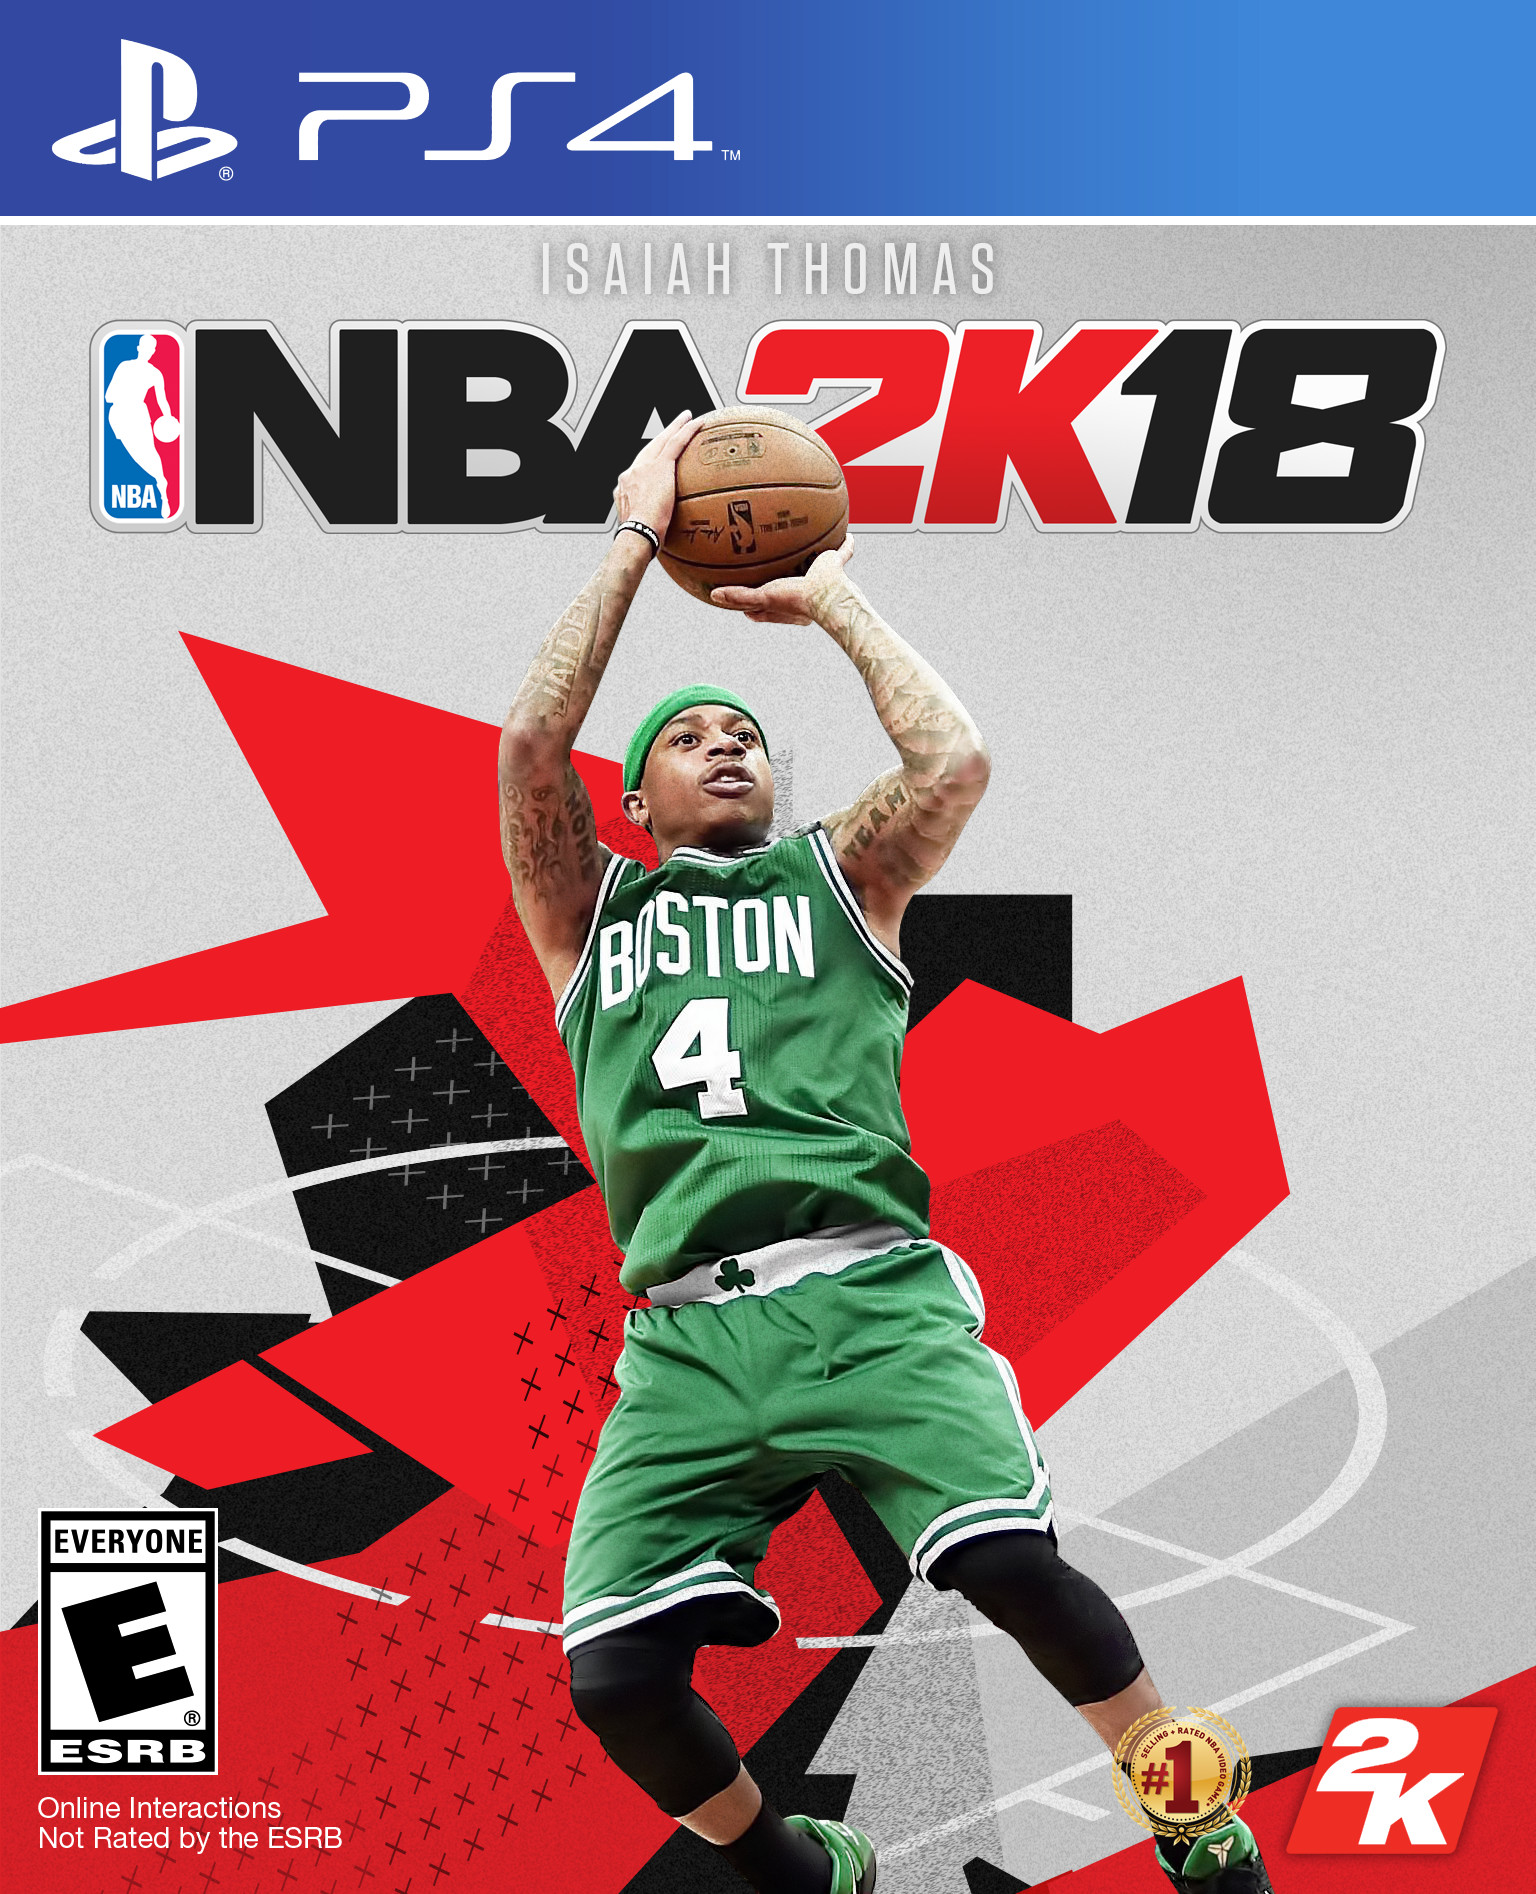 Nba 2k18 Cover Template Nba 2k18 Custom Covers Page 3 Operation Sports forums